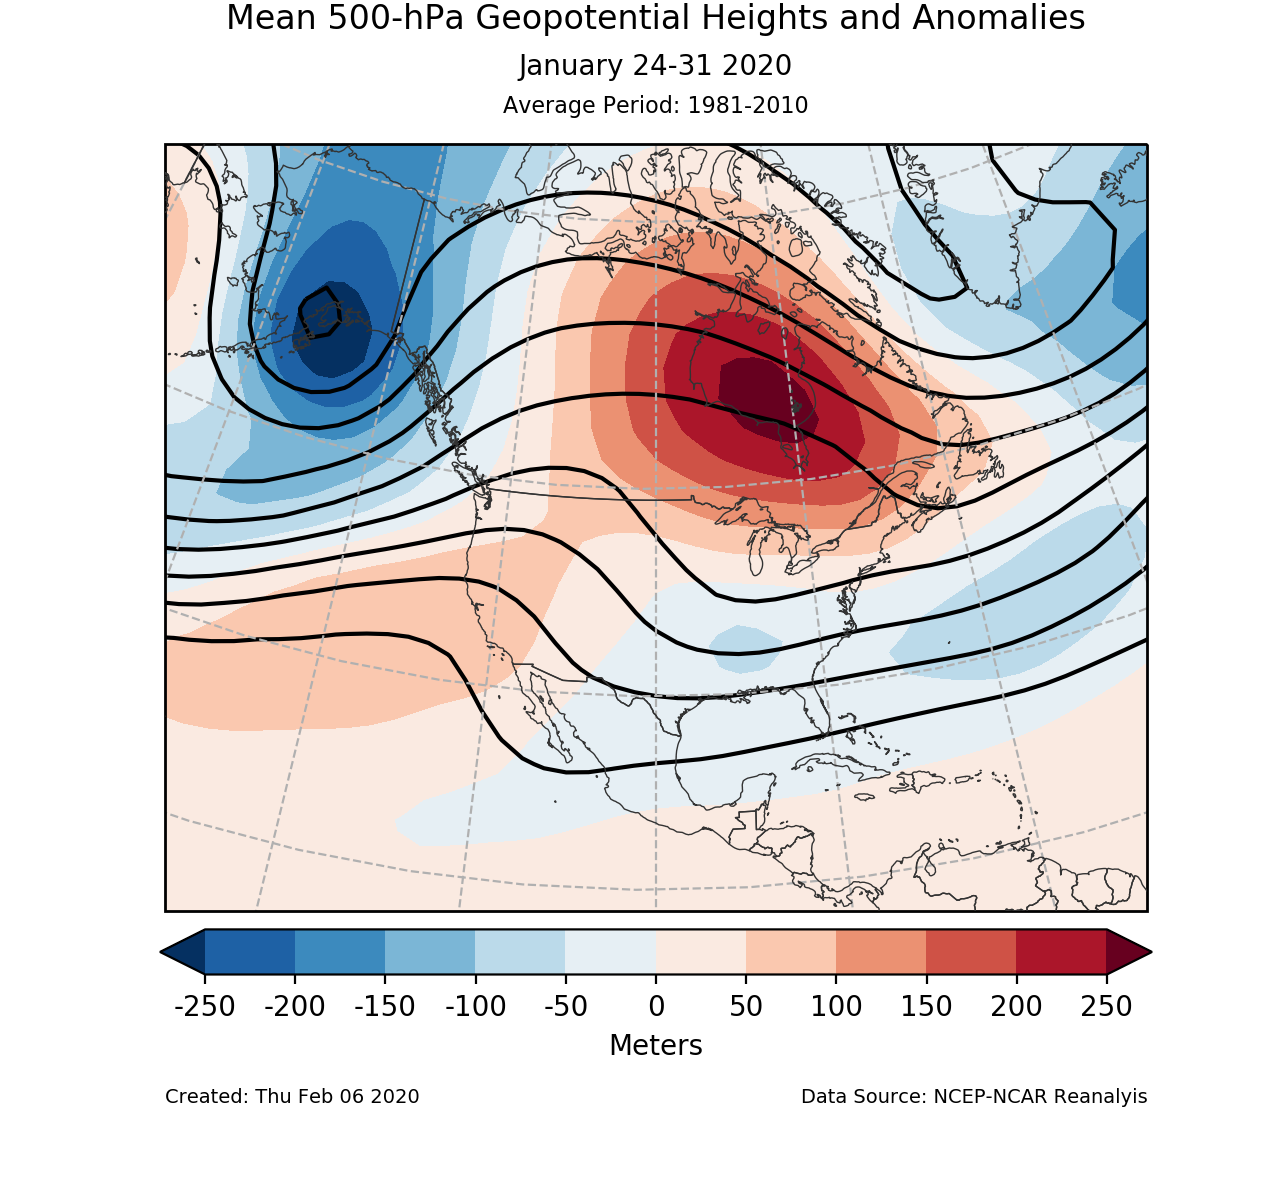 500-mb circulation anomalies for North America for January 24-31 2020